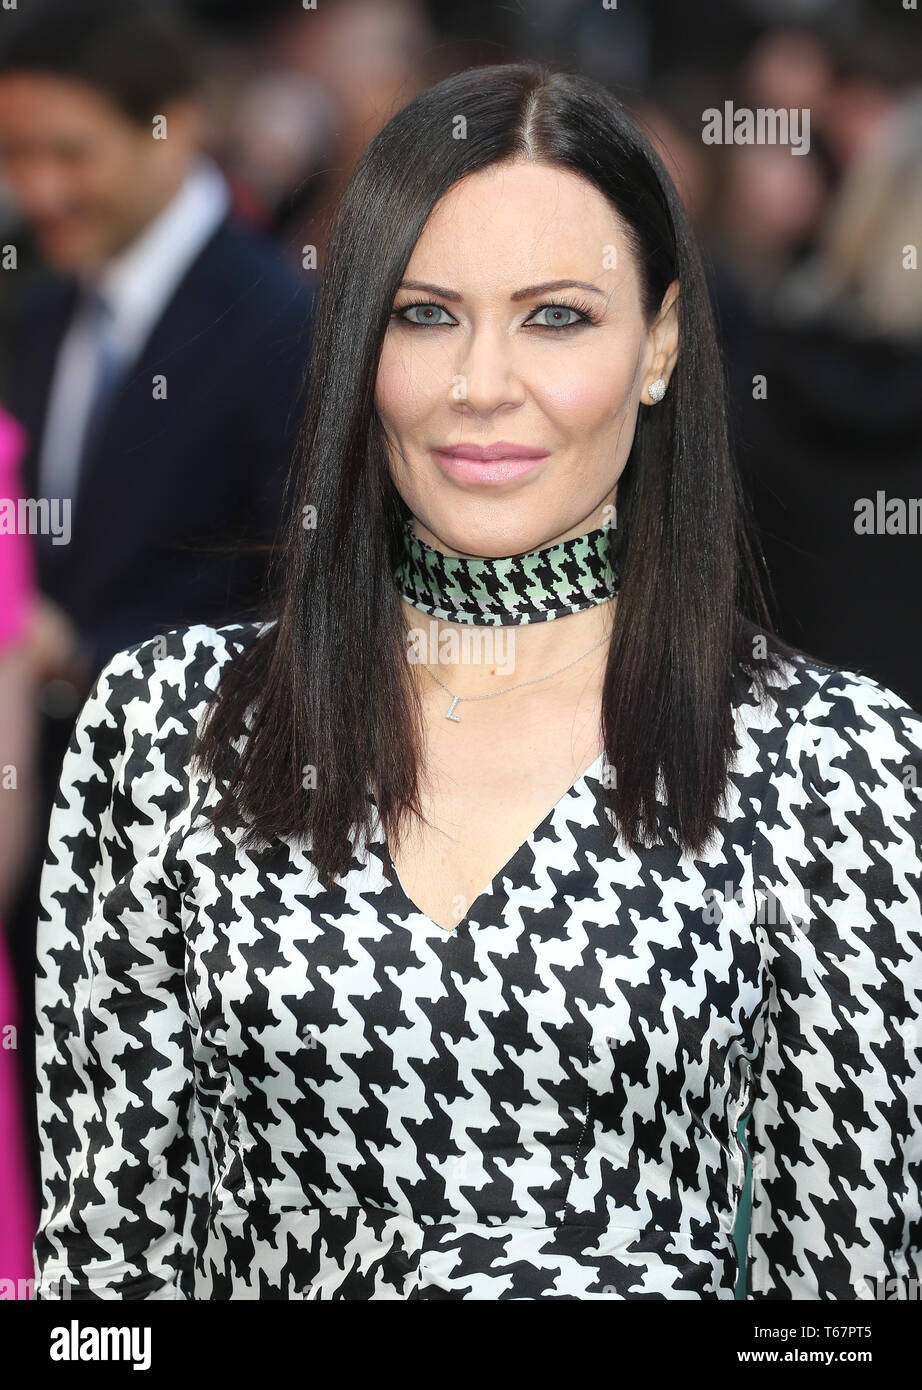 Linzi Stoppard attending the UK premiere of Tolkien held at Curzon Mayfair, London . PRESS ASSOCIATION. Picture date: Monday April 29, 2019. Photo credit should read: Isabel Infantes/PA Wire - Stock Image